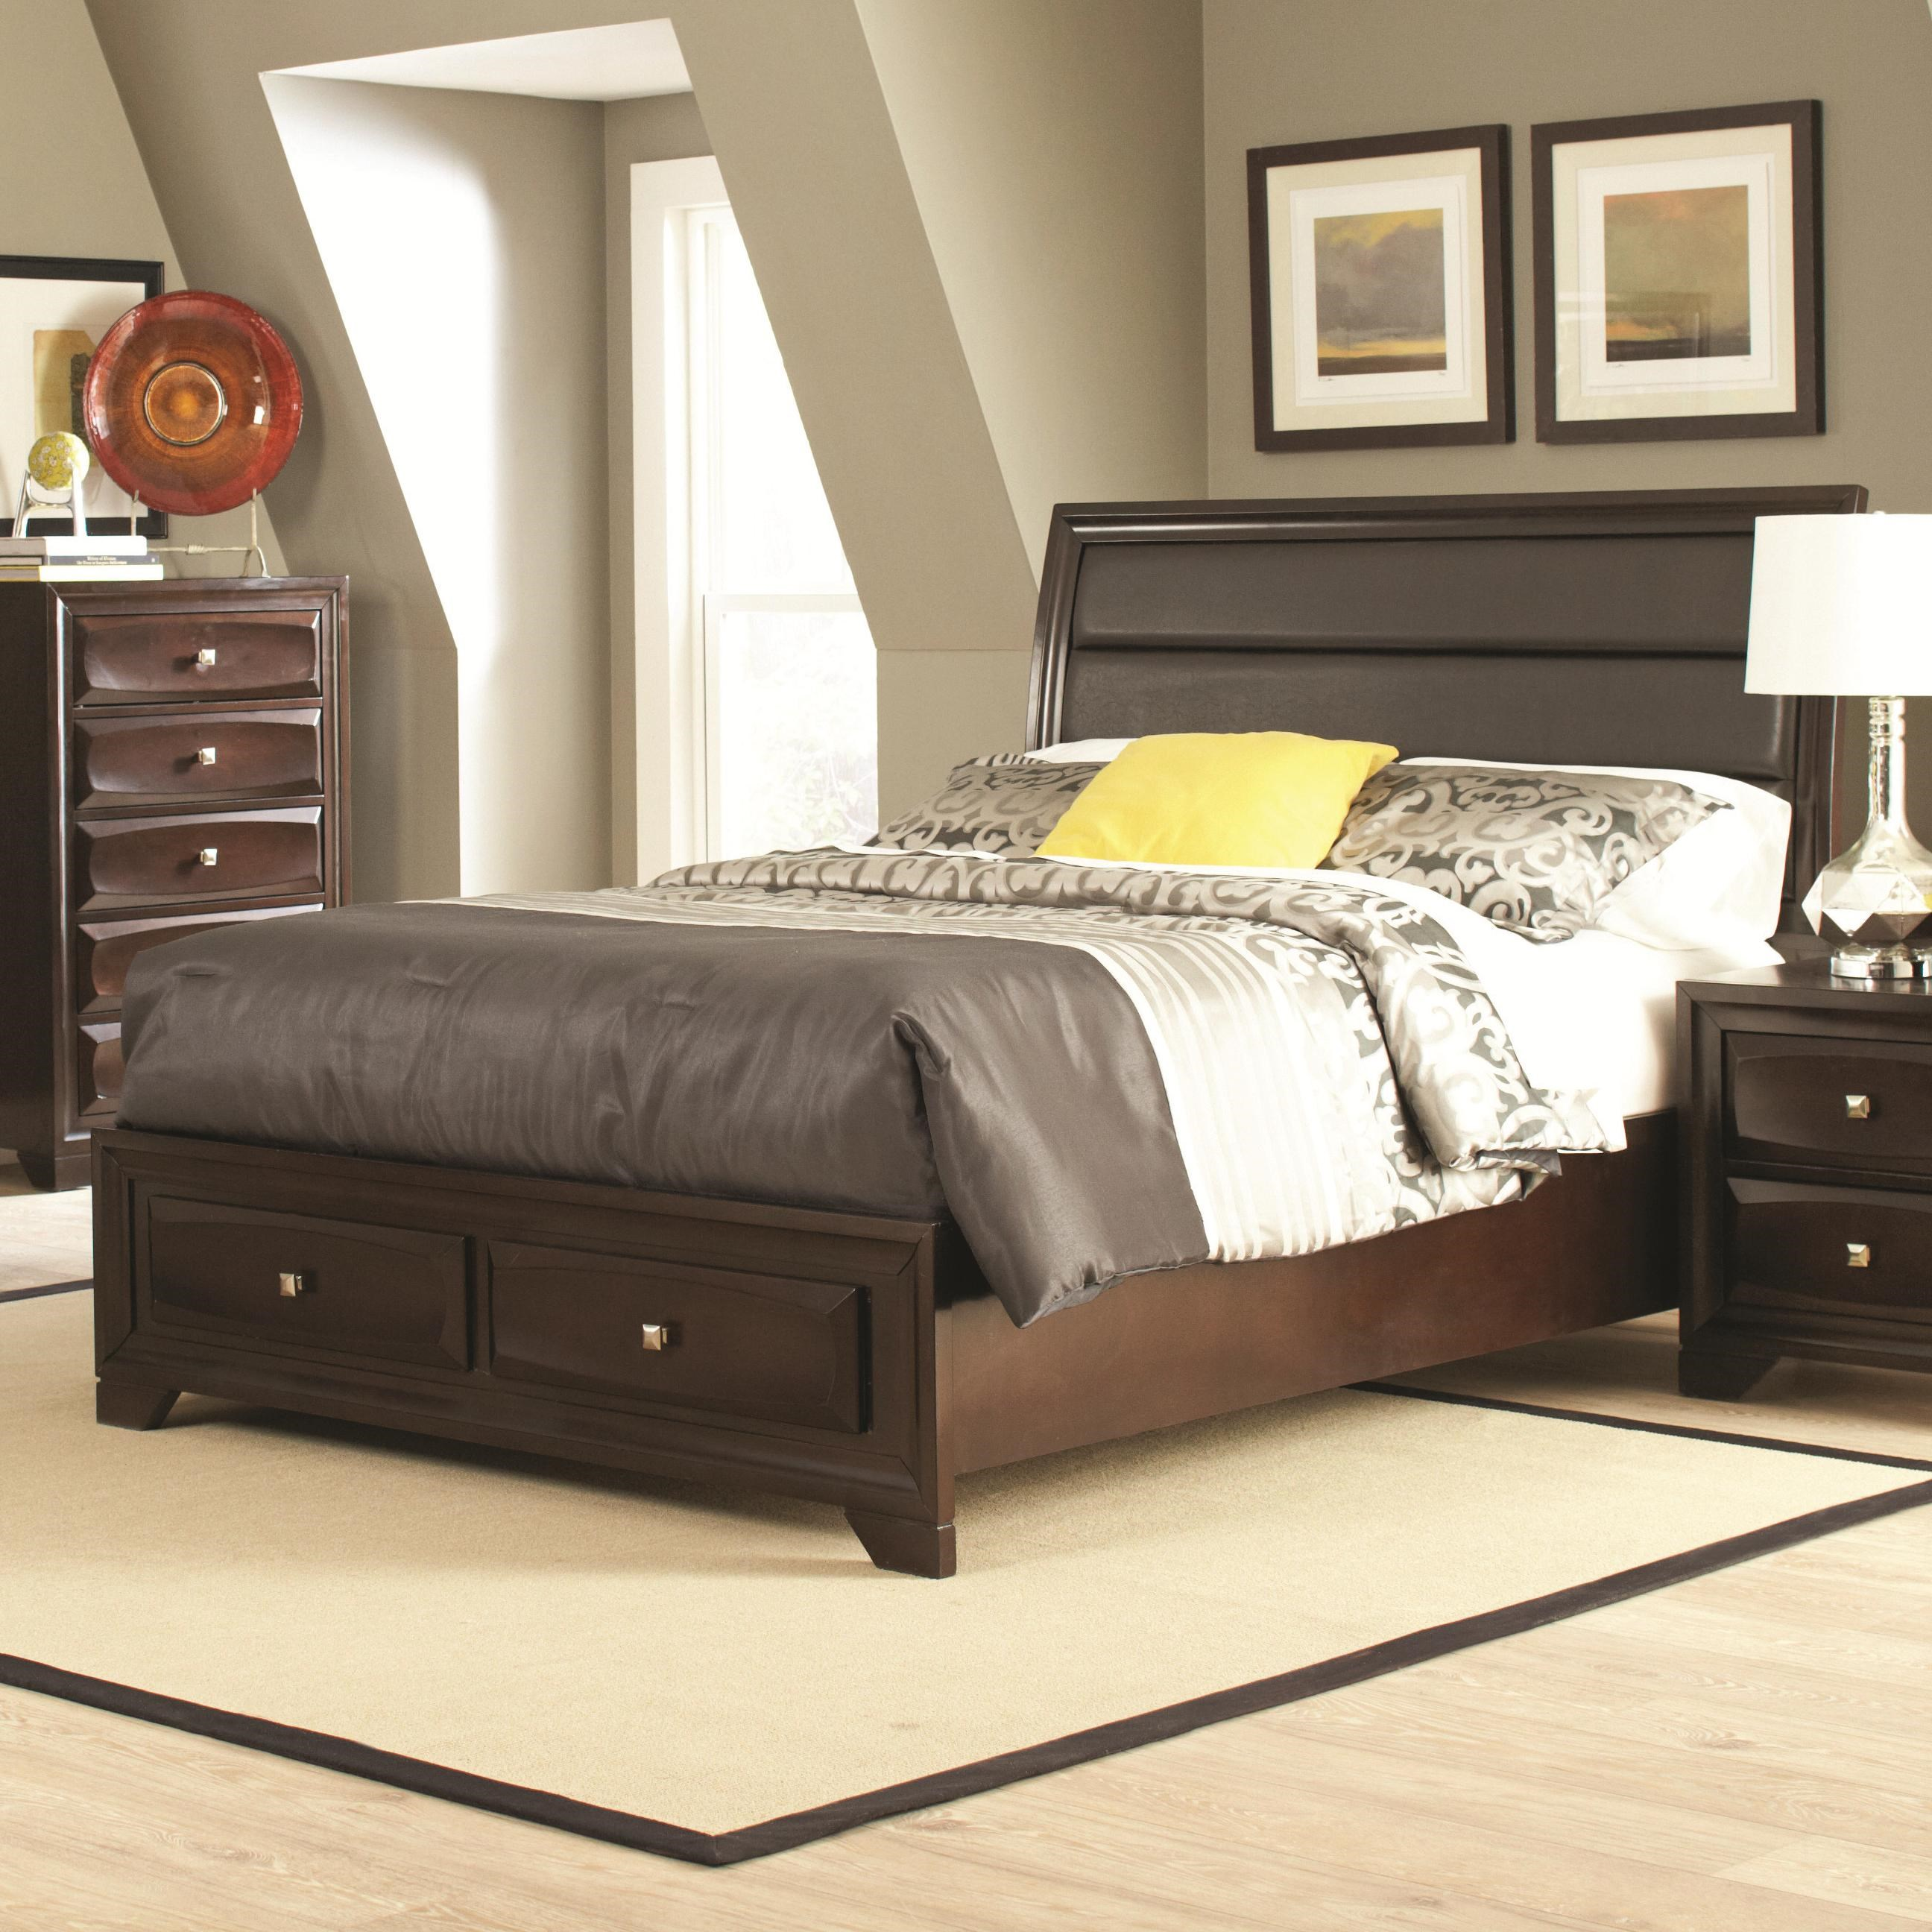 coaster jaxson king bed with upholstered headboard and storage, Headboard designs